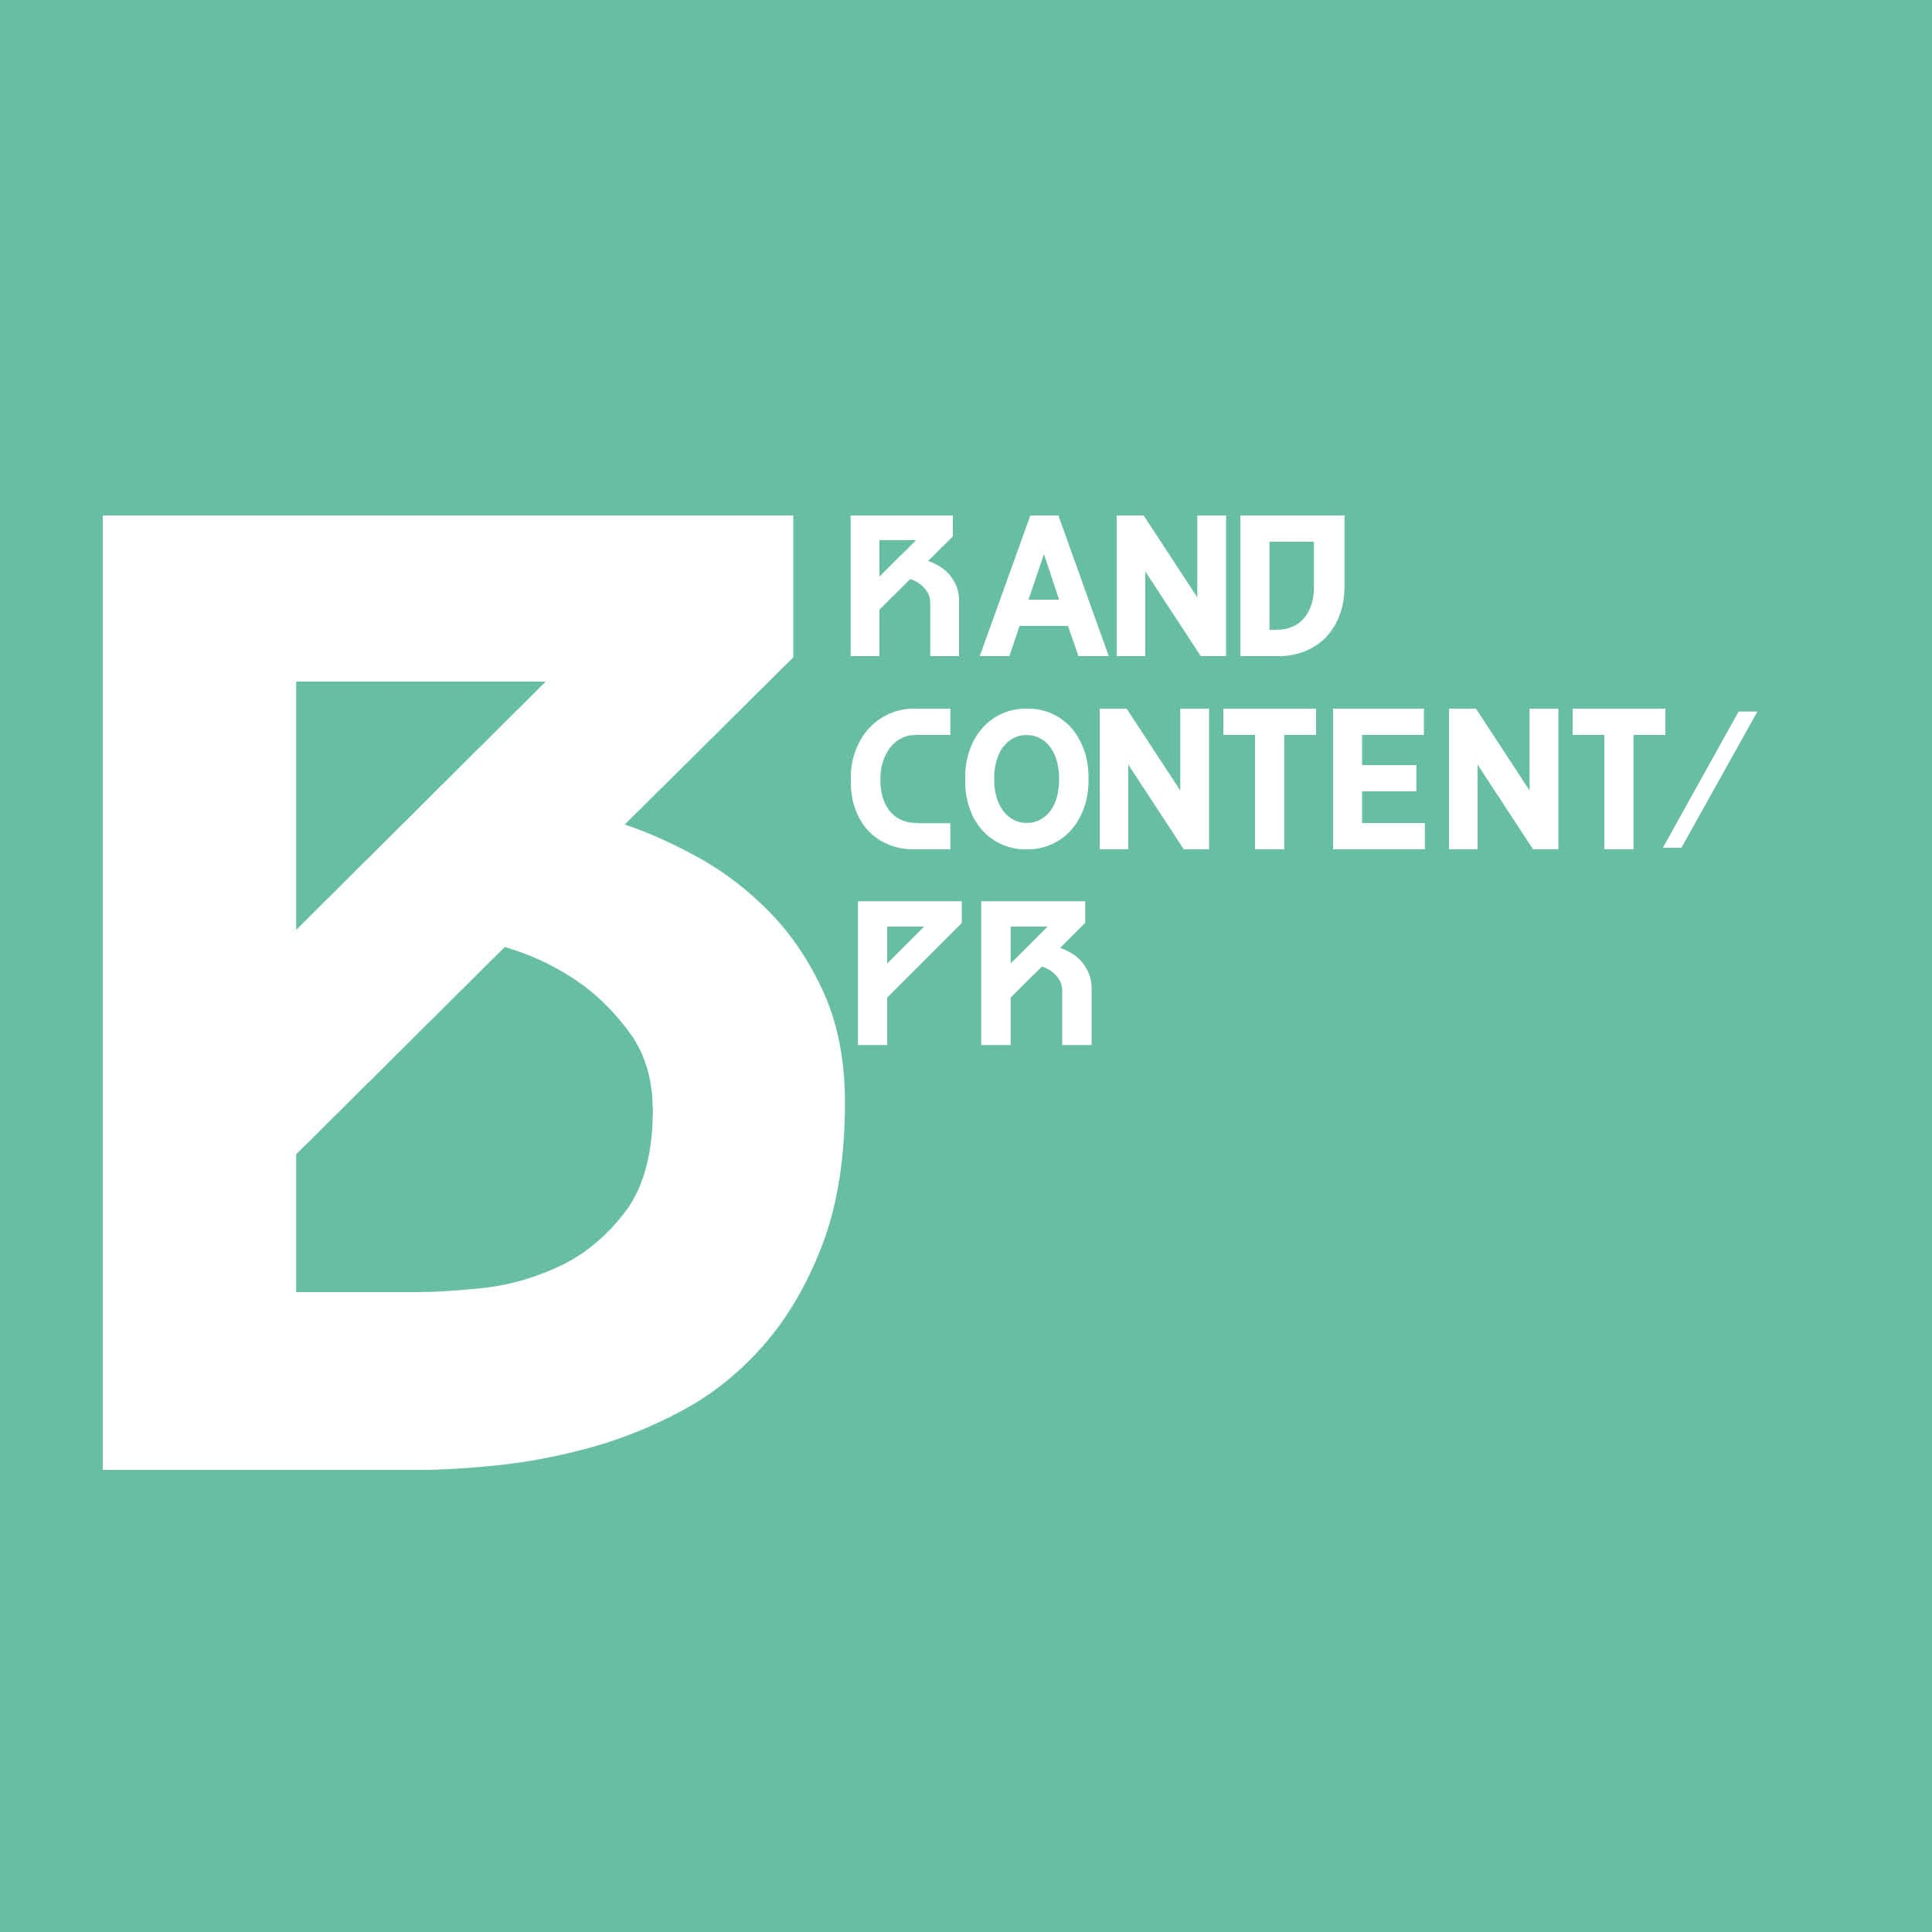 Brand Content & PR - Branding A Better World